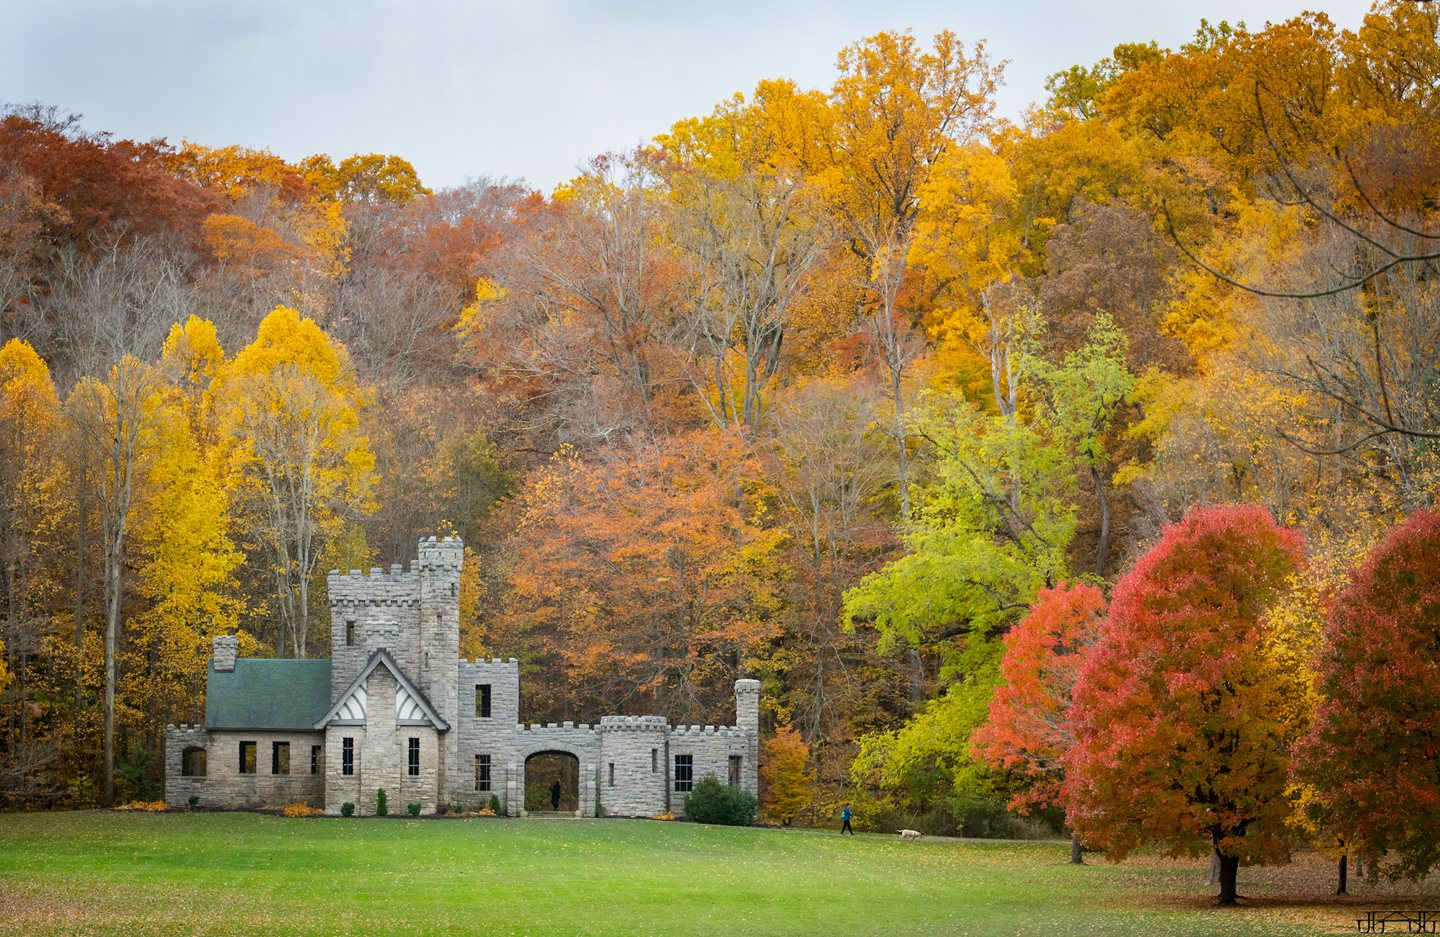 Cleveland Metroparks to Host Raise the Roof Fundraiser to Benefit Historic Squire's Castle